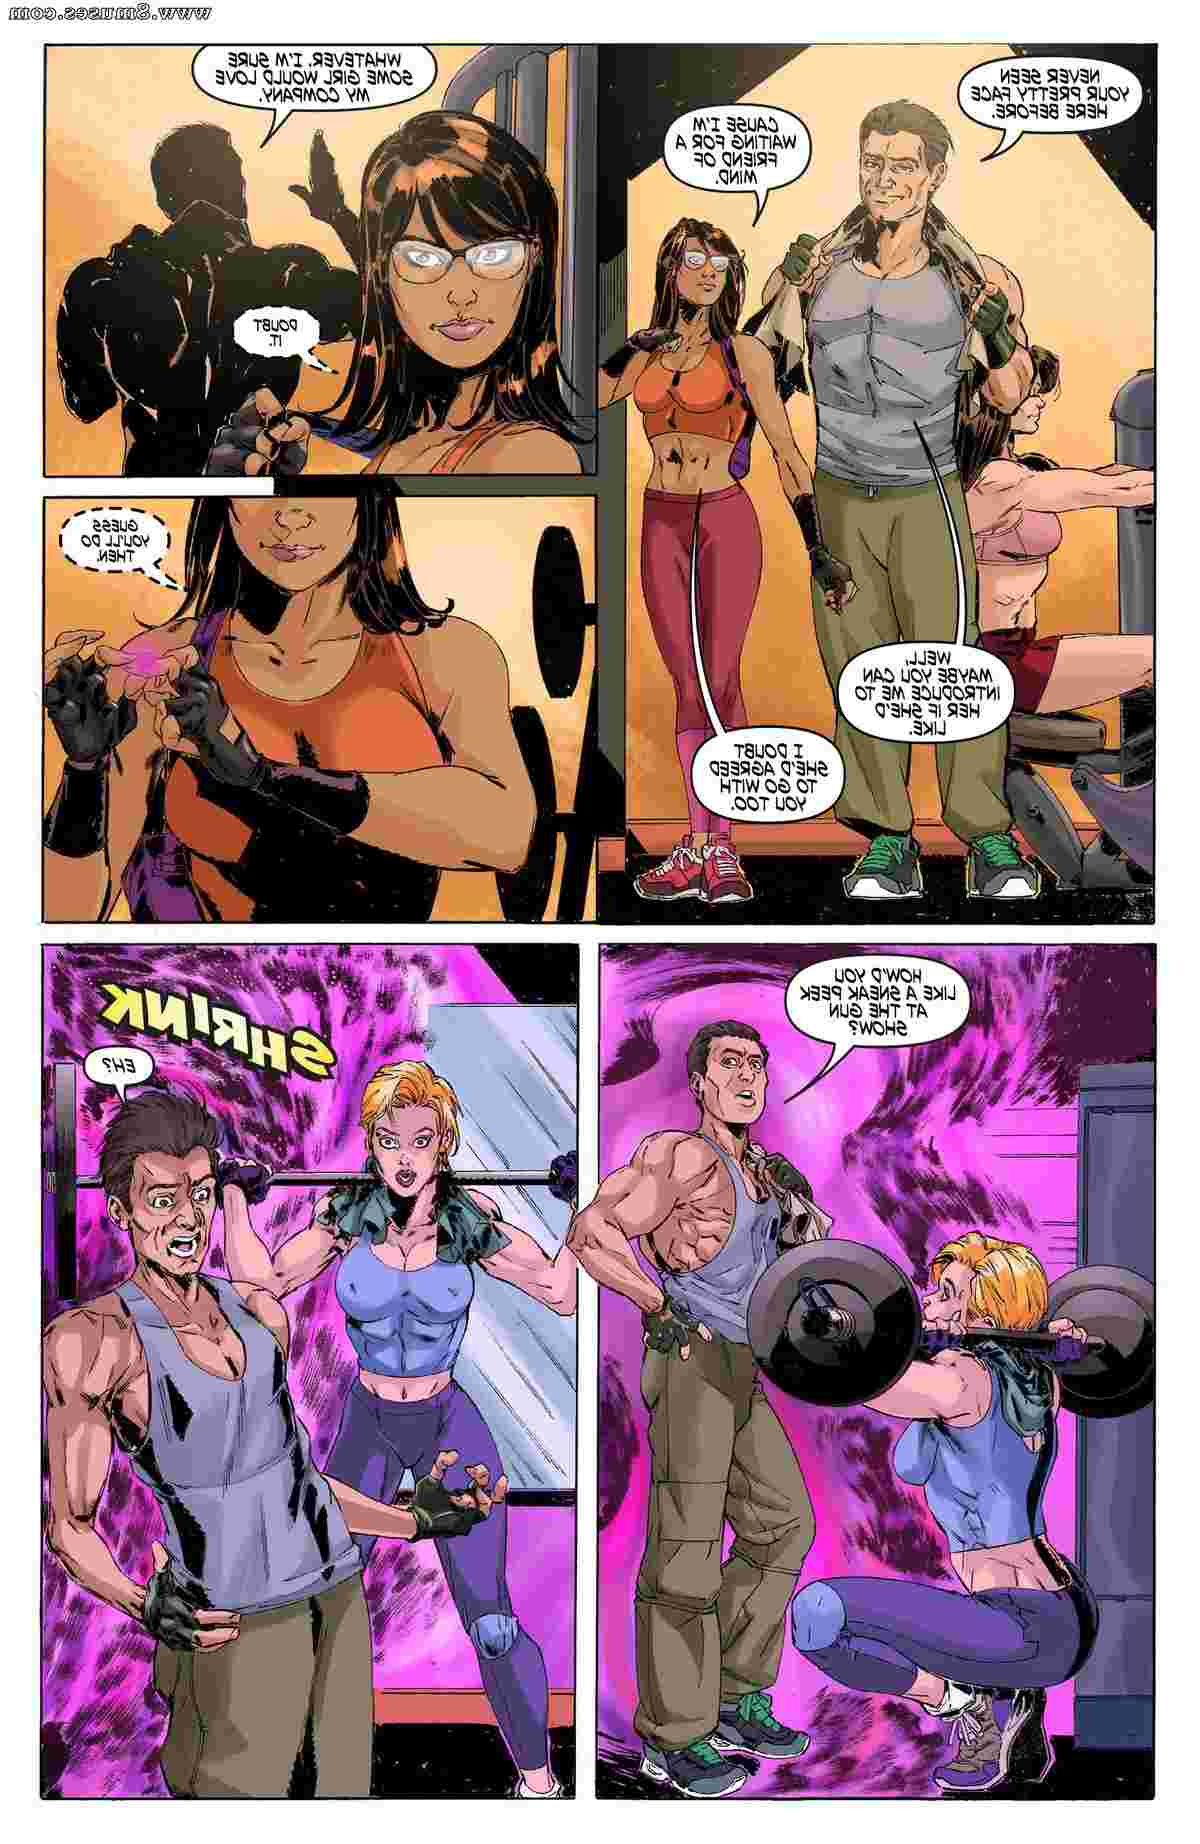 MuscleFan-Comics/Leveling-The-Field Leveling_The_Field__8muses_-_Sex_and_Porn_Comics_13.jpg